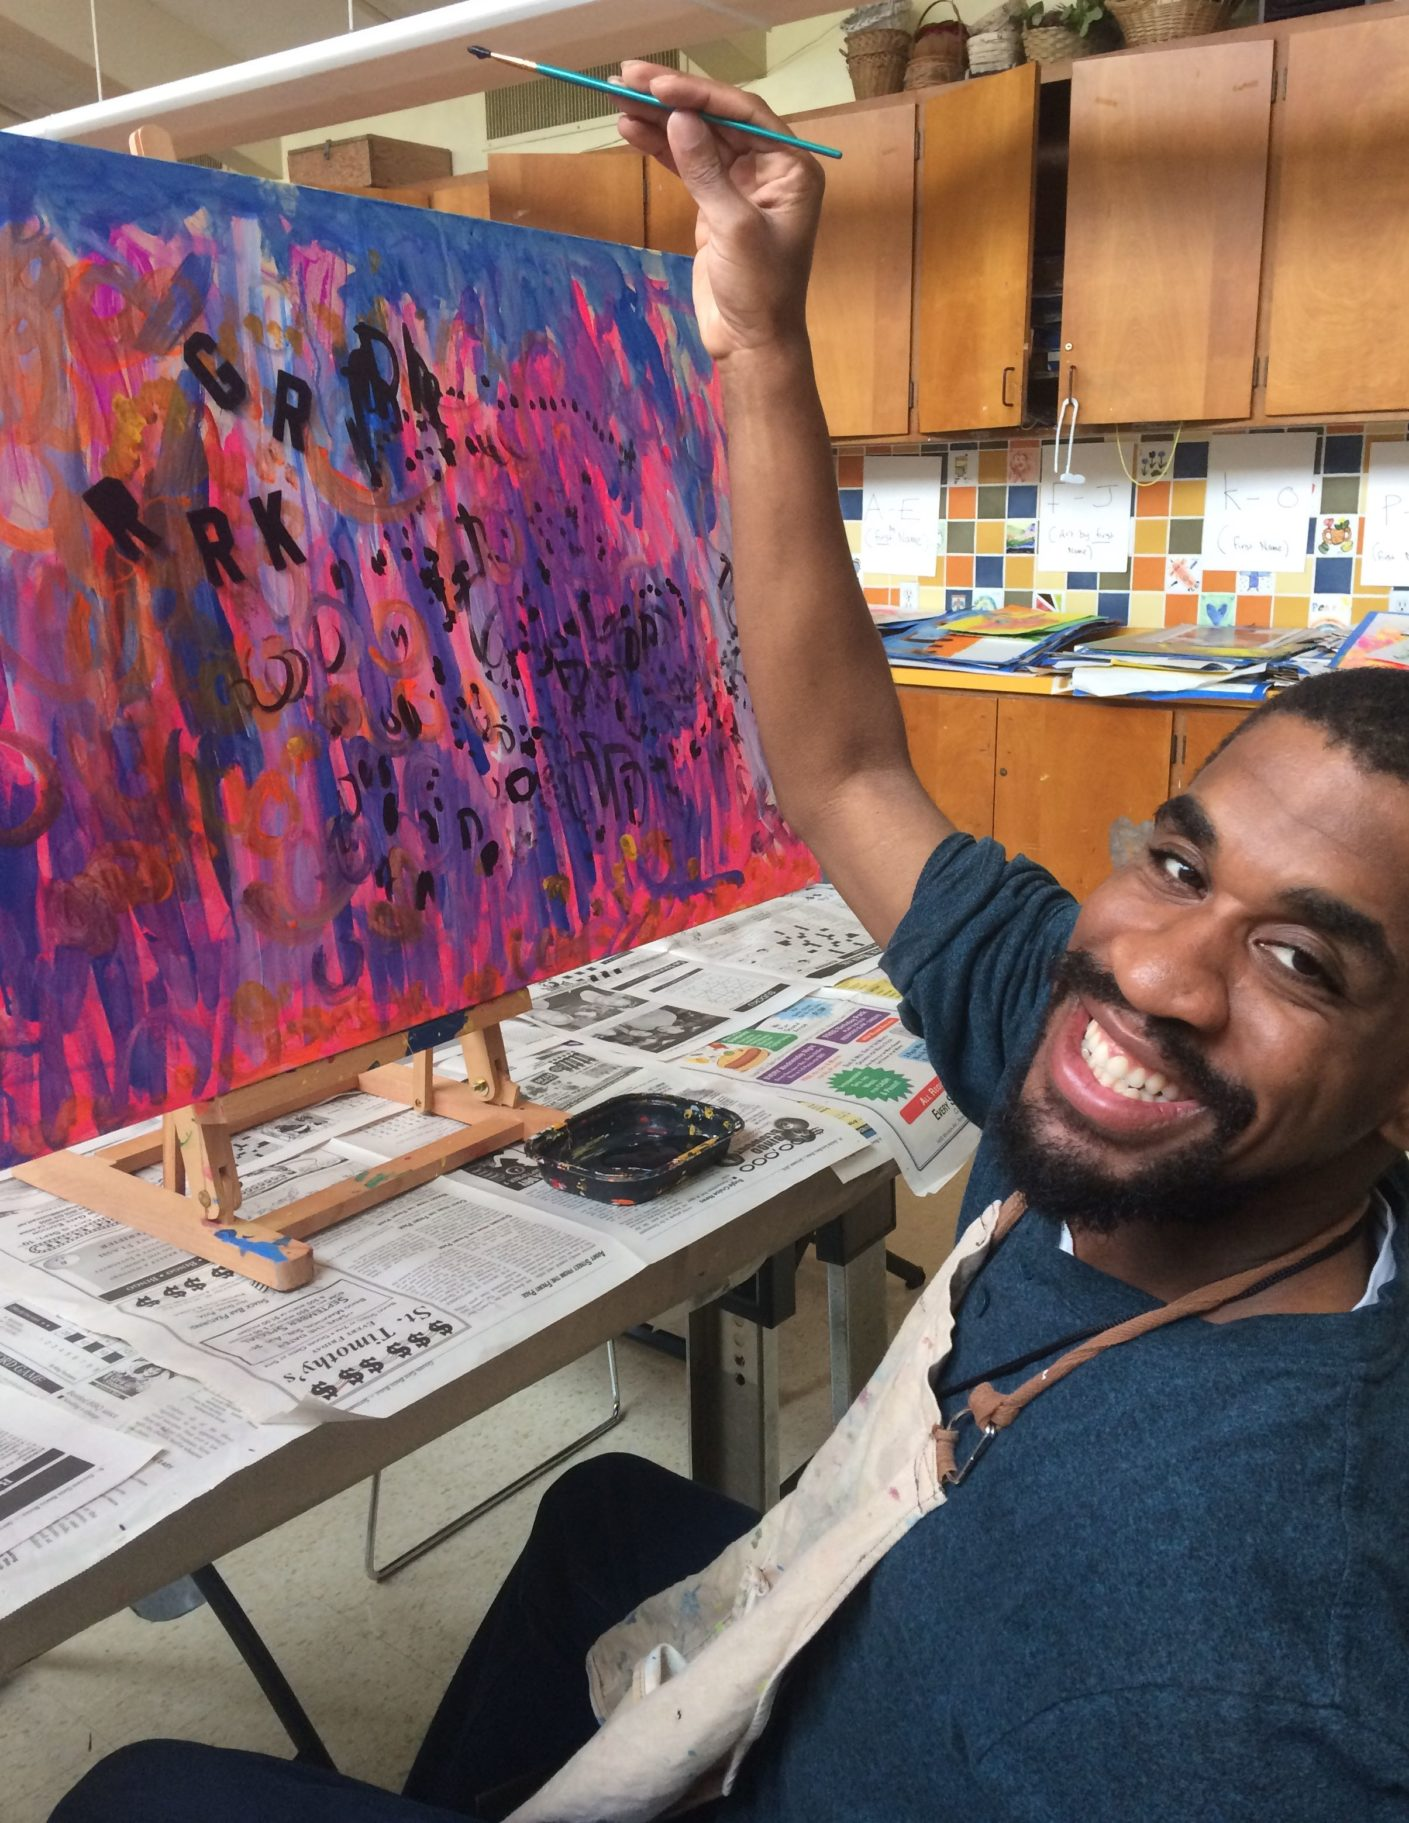 The joy of painting. Duane creating.